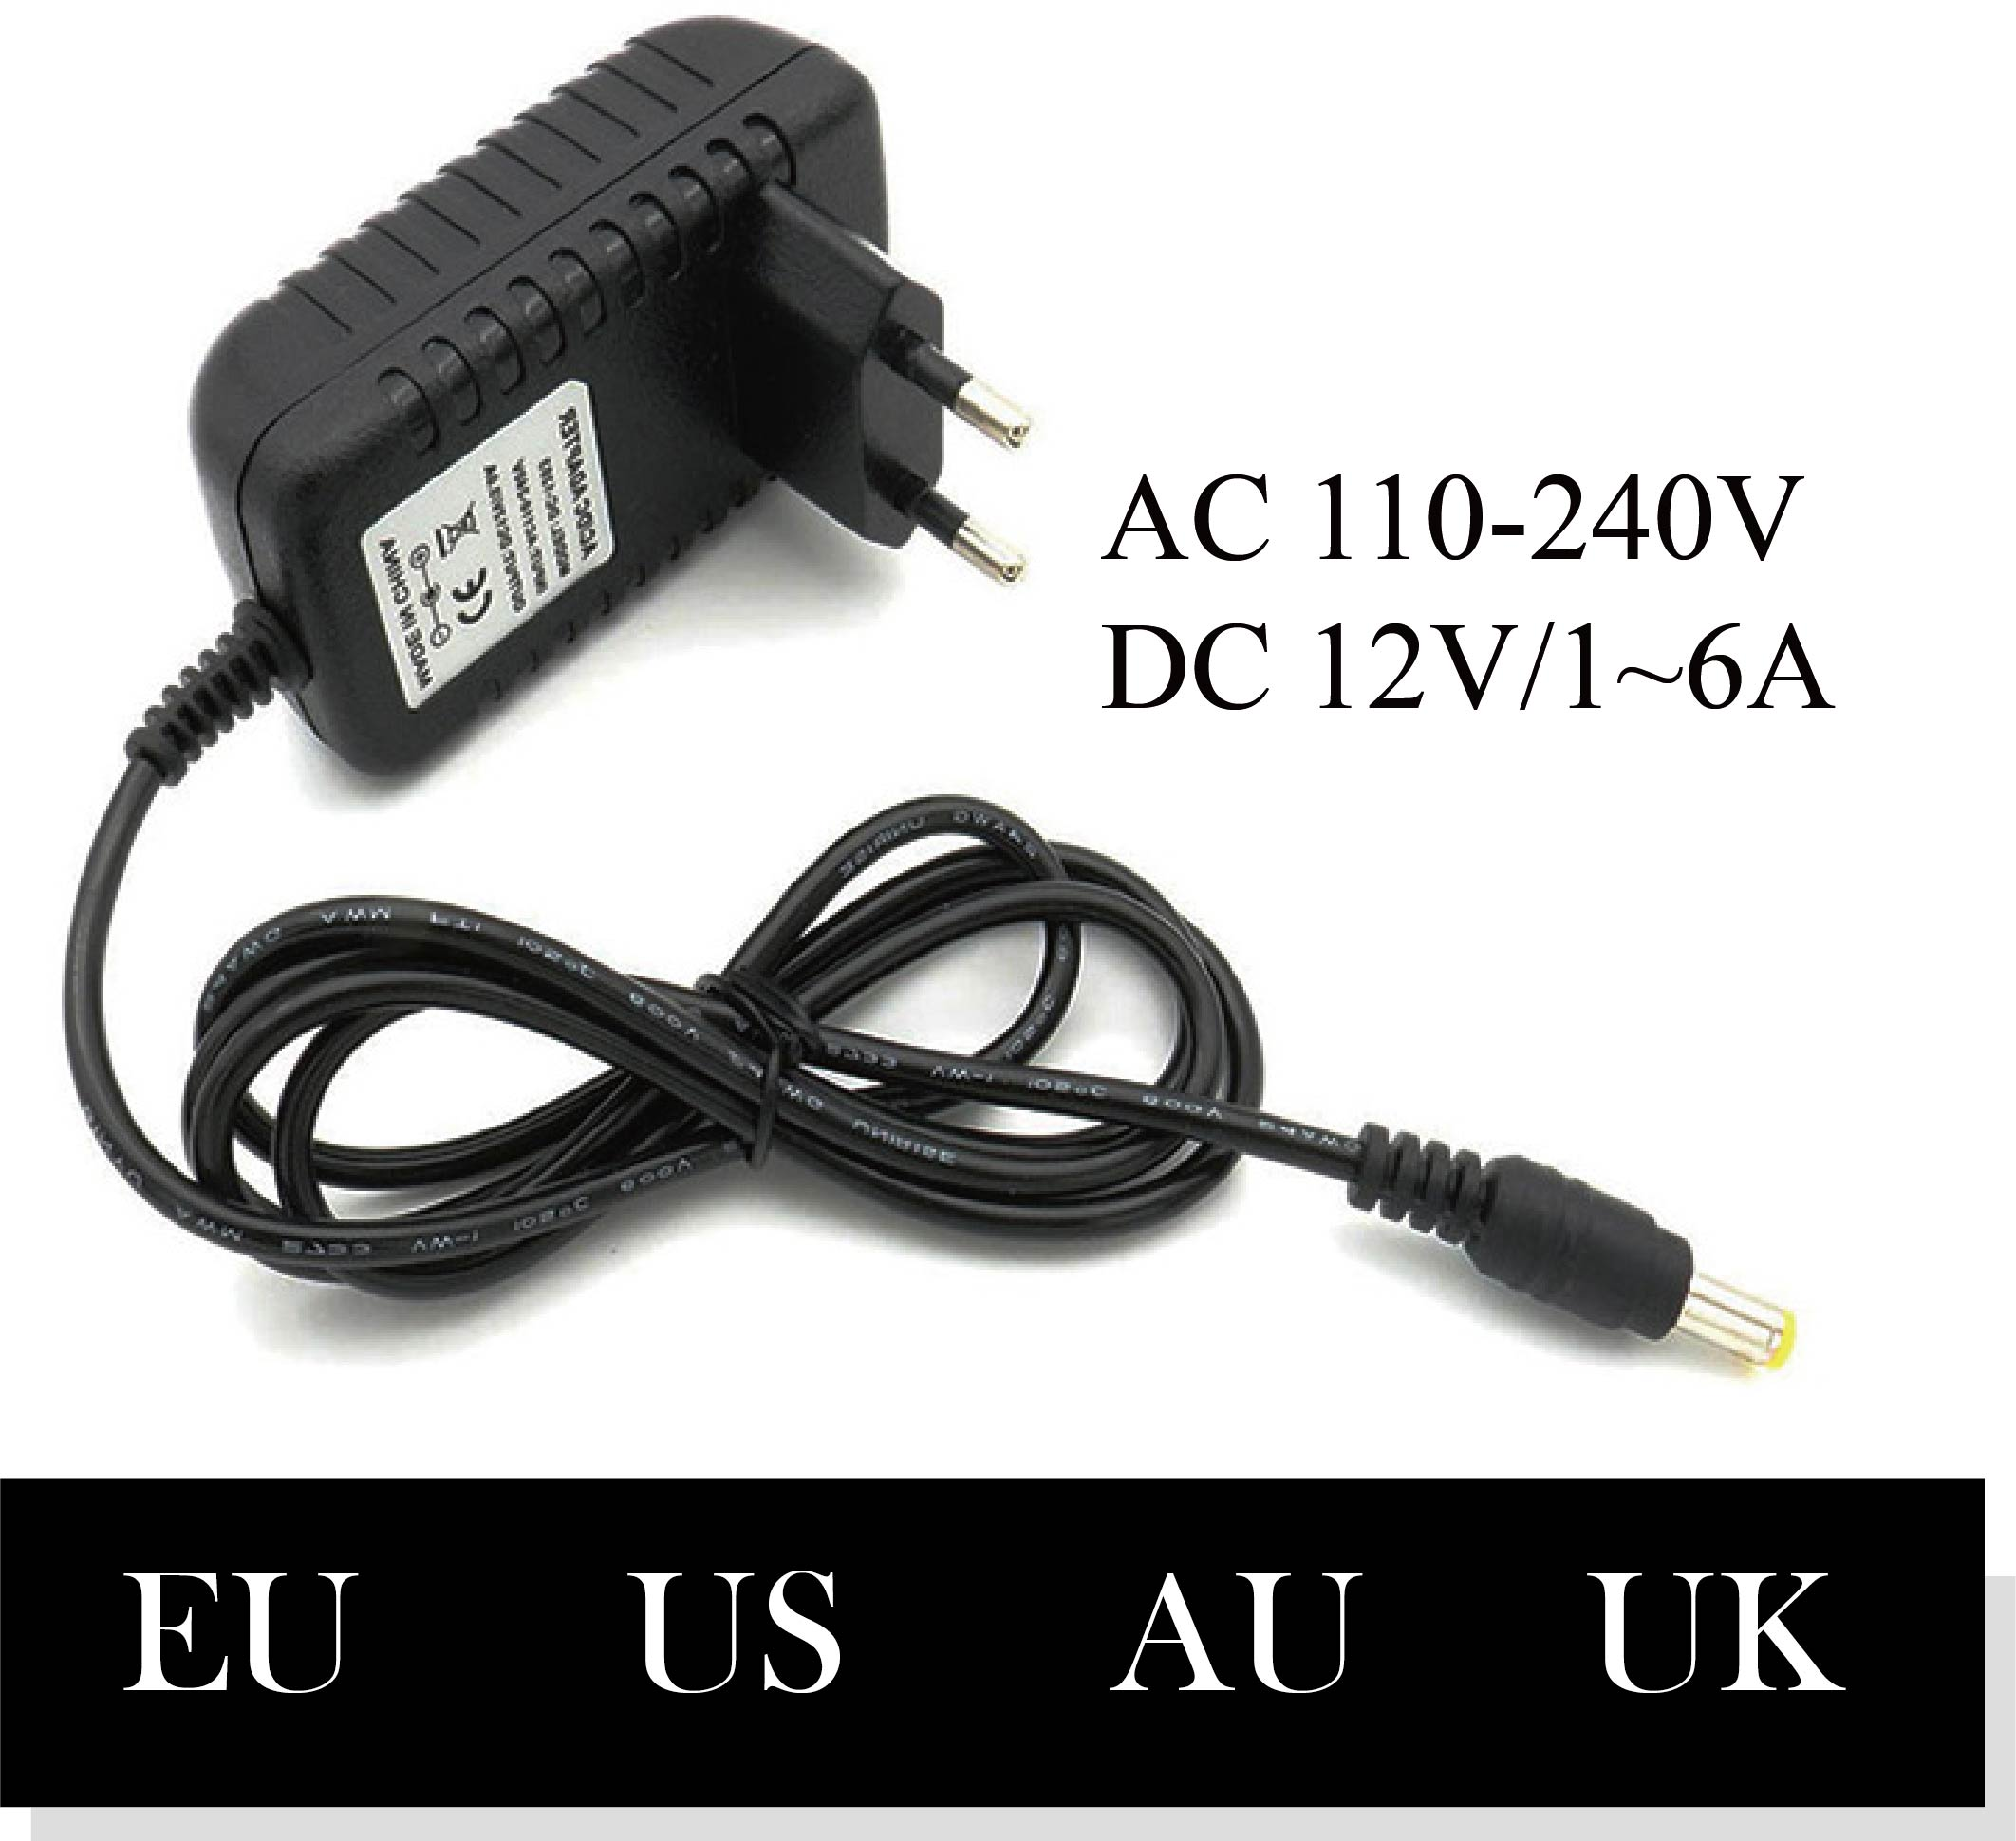 110-240V 12V 1A 2A 3A 4A 5A 6A AC To DC Adapter Universal Power Adapter Charger LED Light Strip Plug